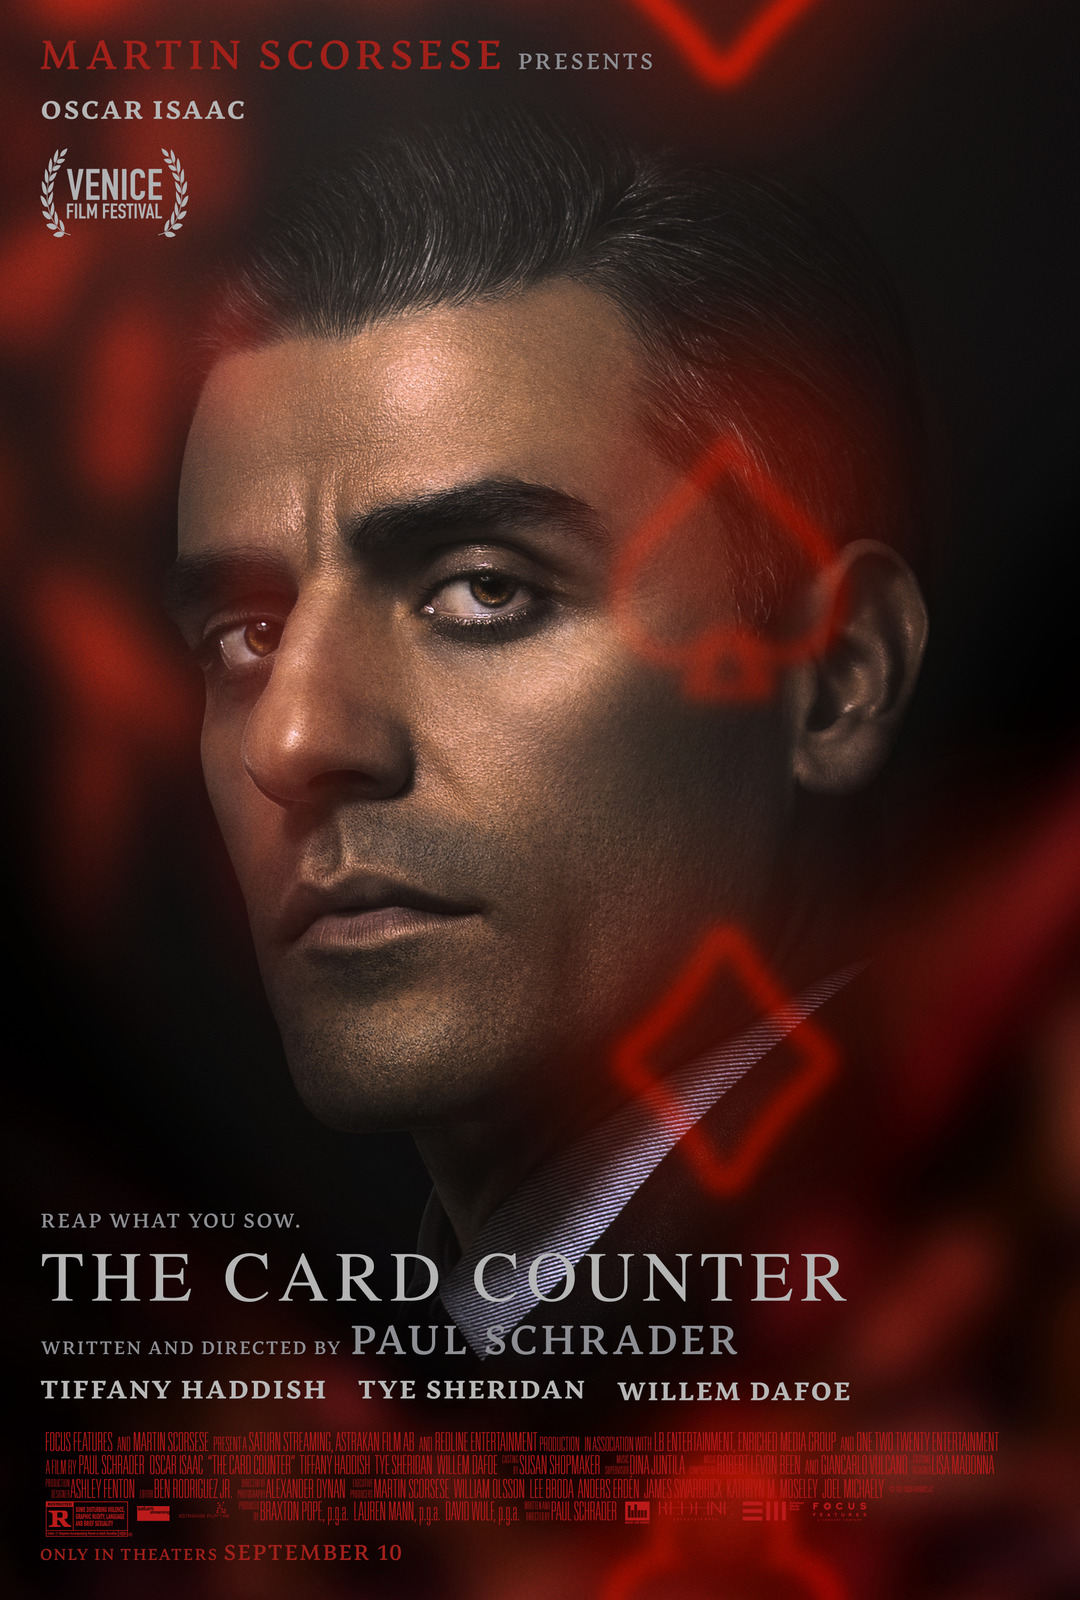 The Card Counter 2021 English 480p HDRip 350MB Download